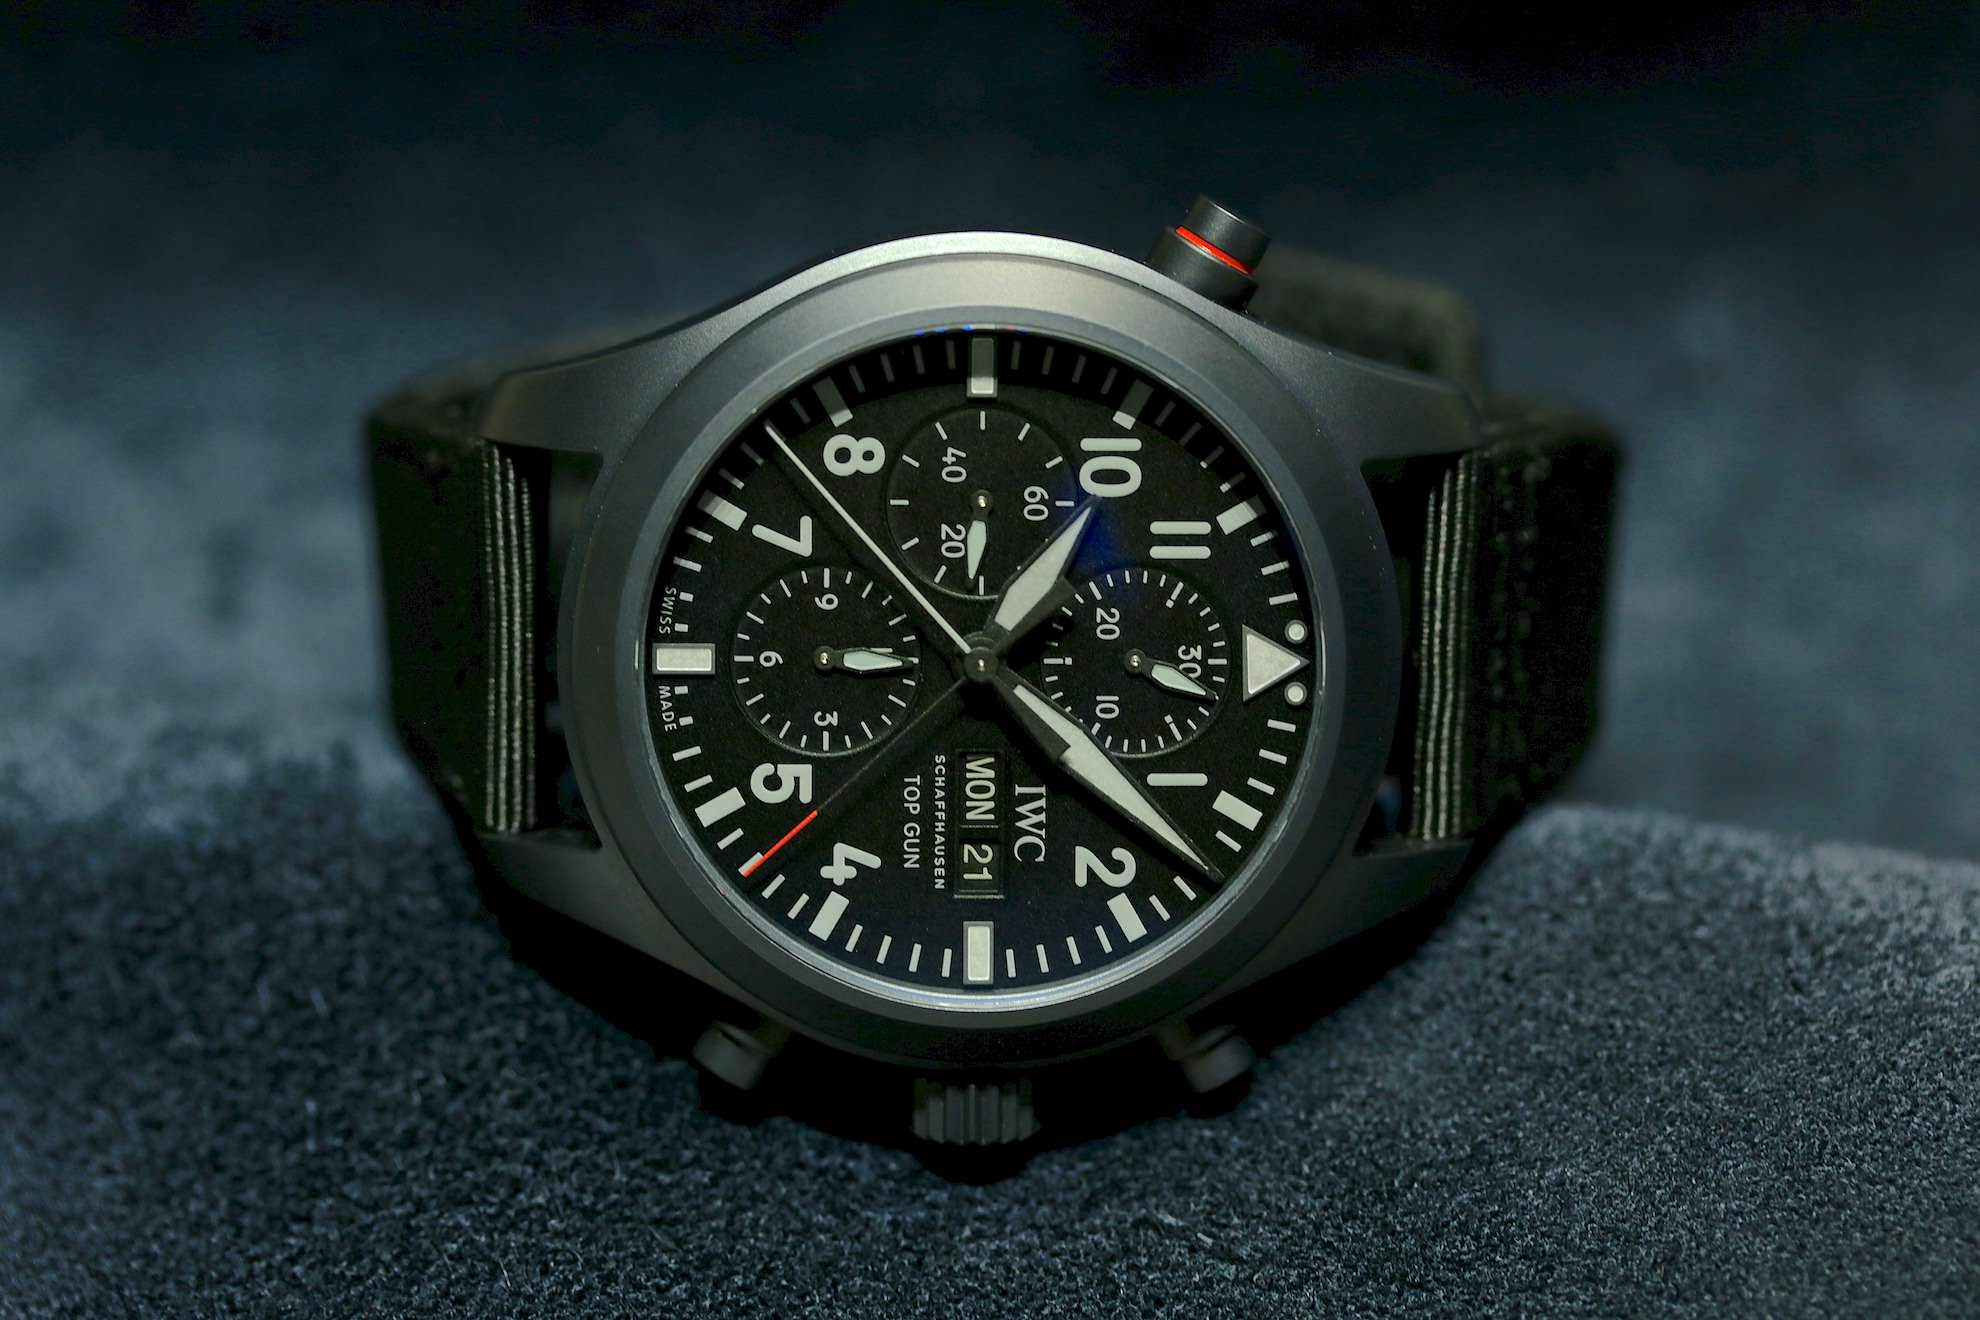 IWC_Pilots_Watch_Double_Chronograph_Top_Gun_Ceratanium_2